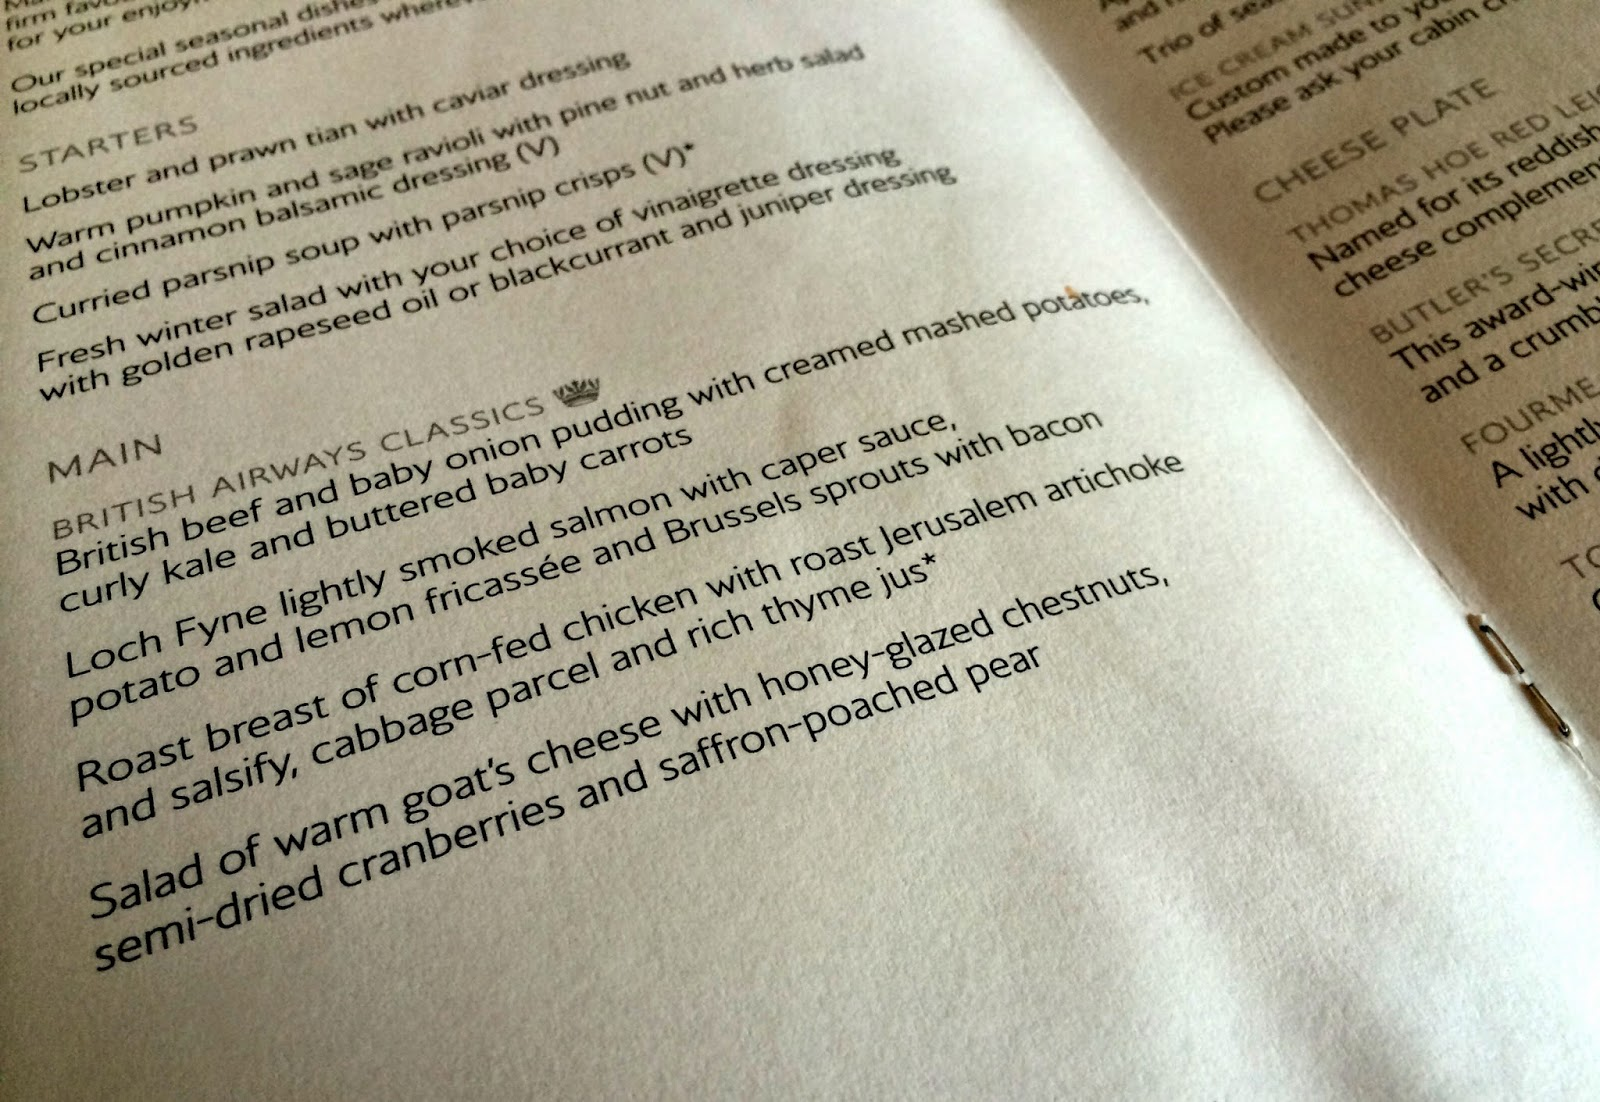 British Airways First Class Menu